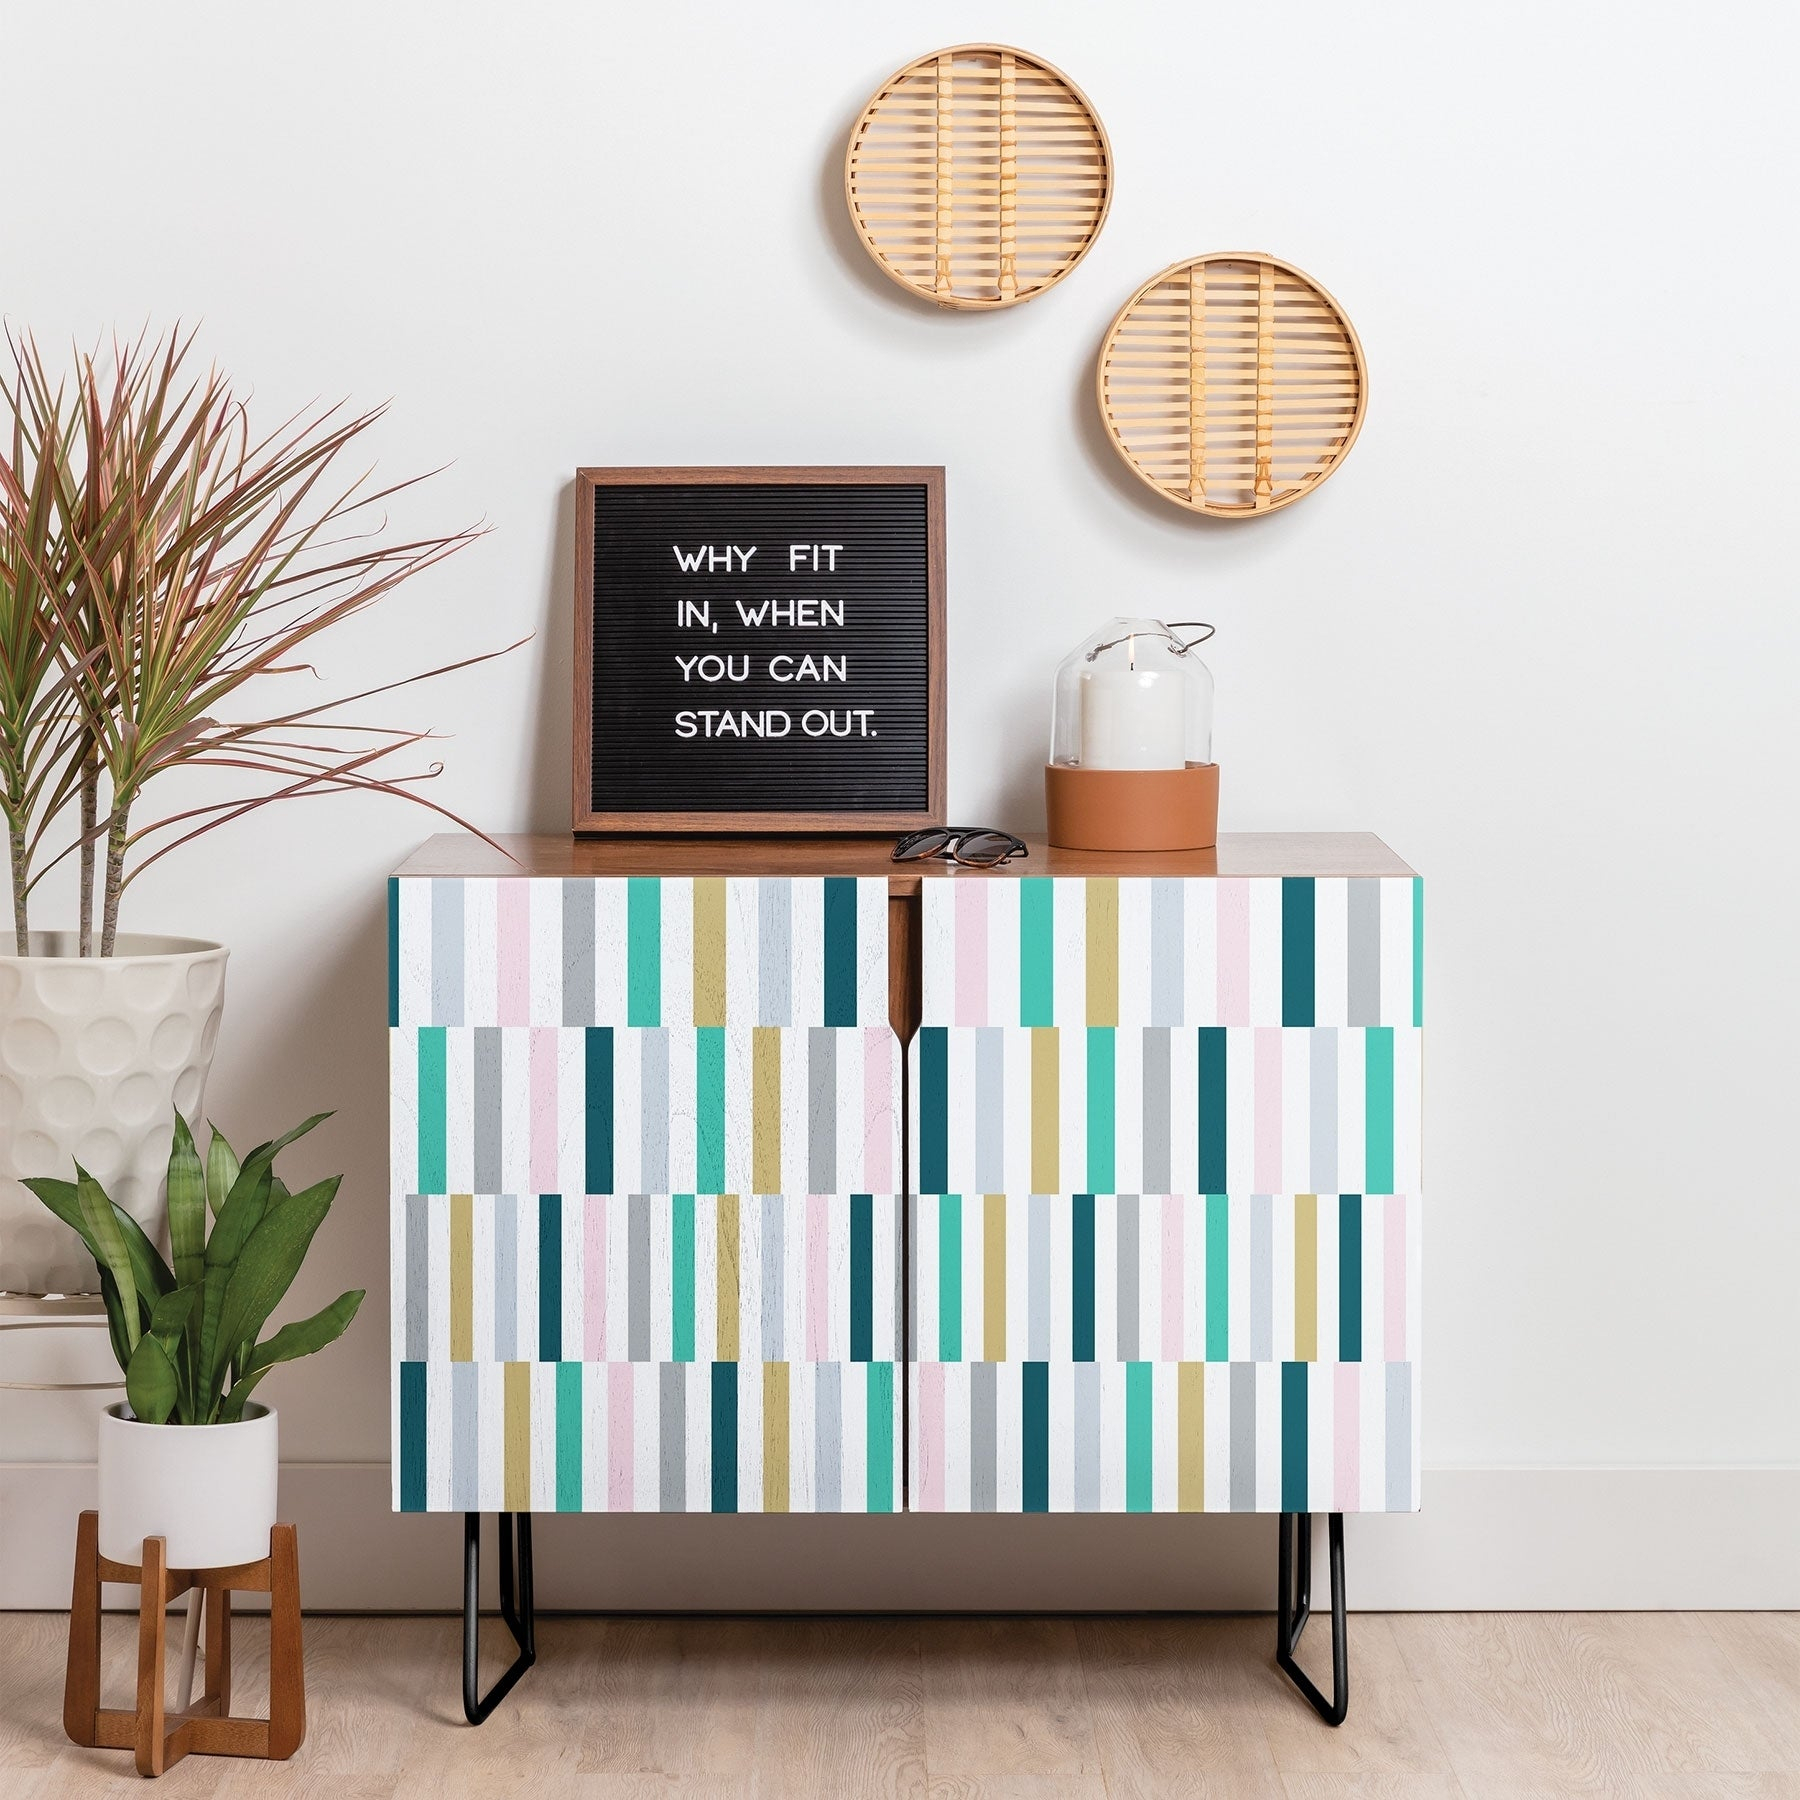 Deny Designs Scandi Stripes Credenza (Birch Or Walnut, 2 Leg Options) pertaining to Multi Stripe Credenzas (Image 10 of 30)